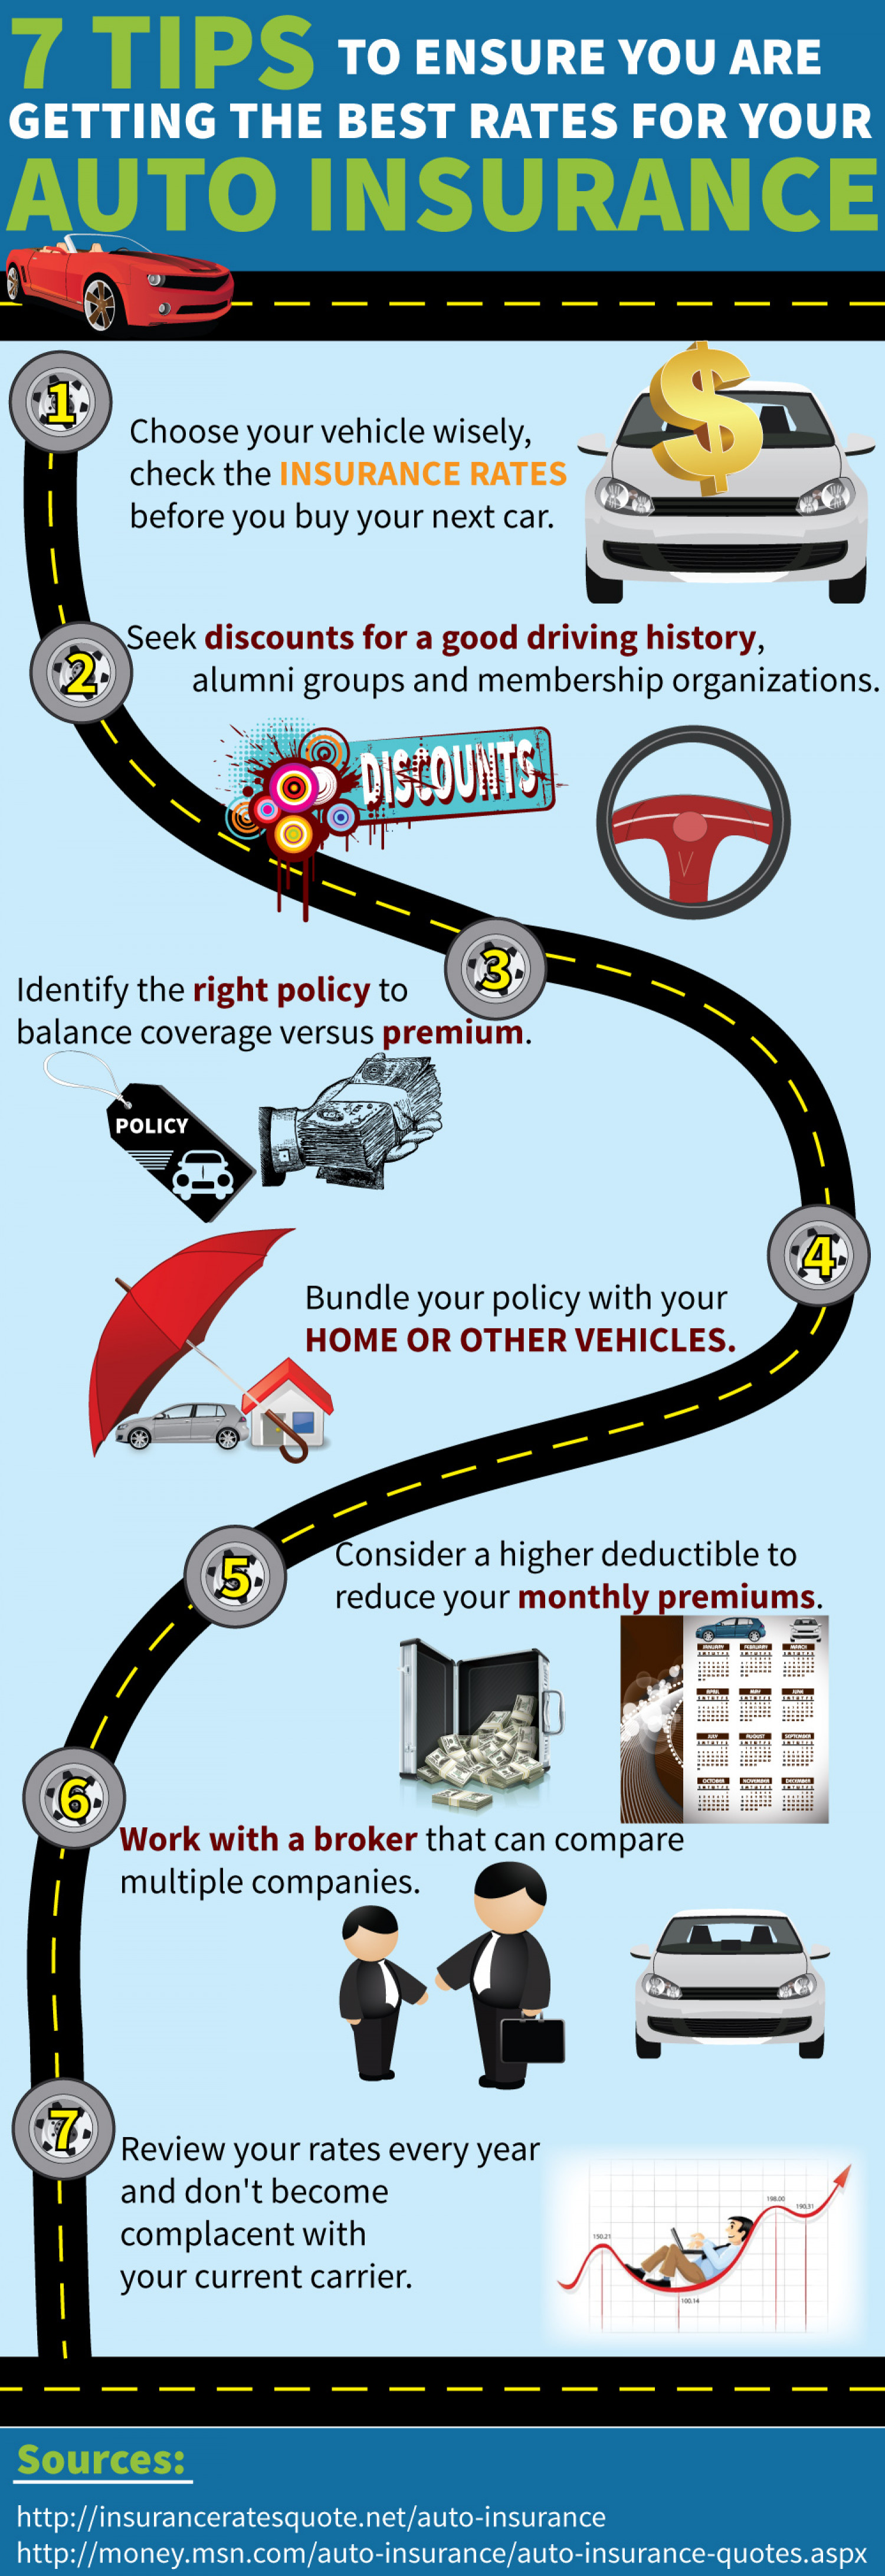 7 Tips For Saving With Auto Insurance Infographic